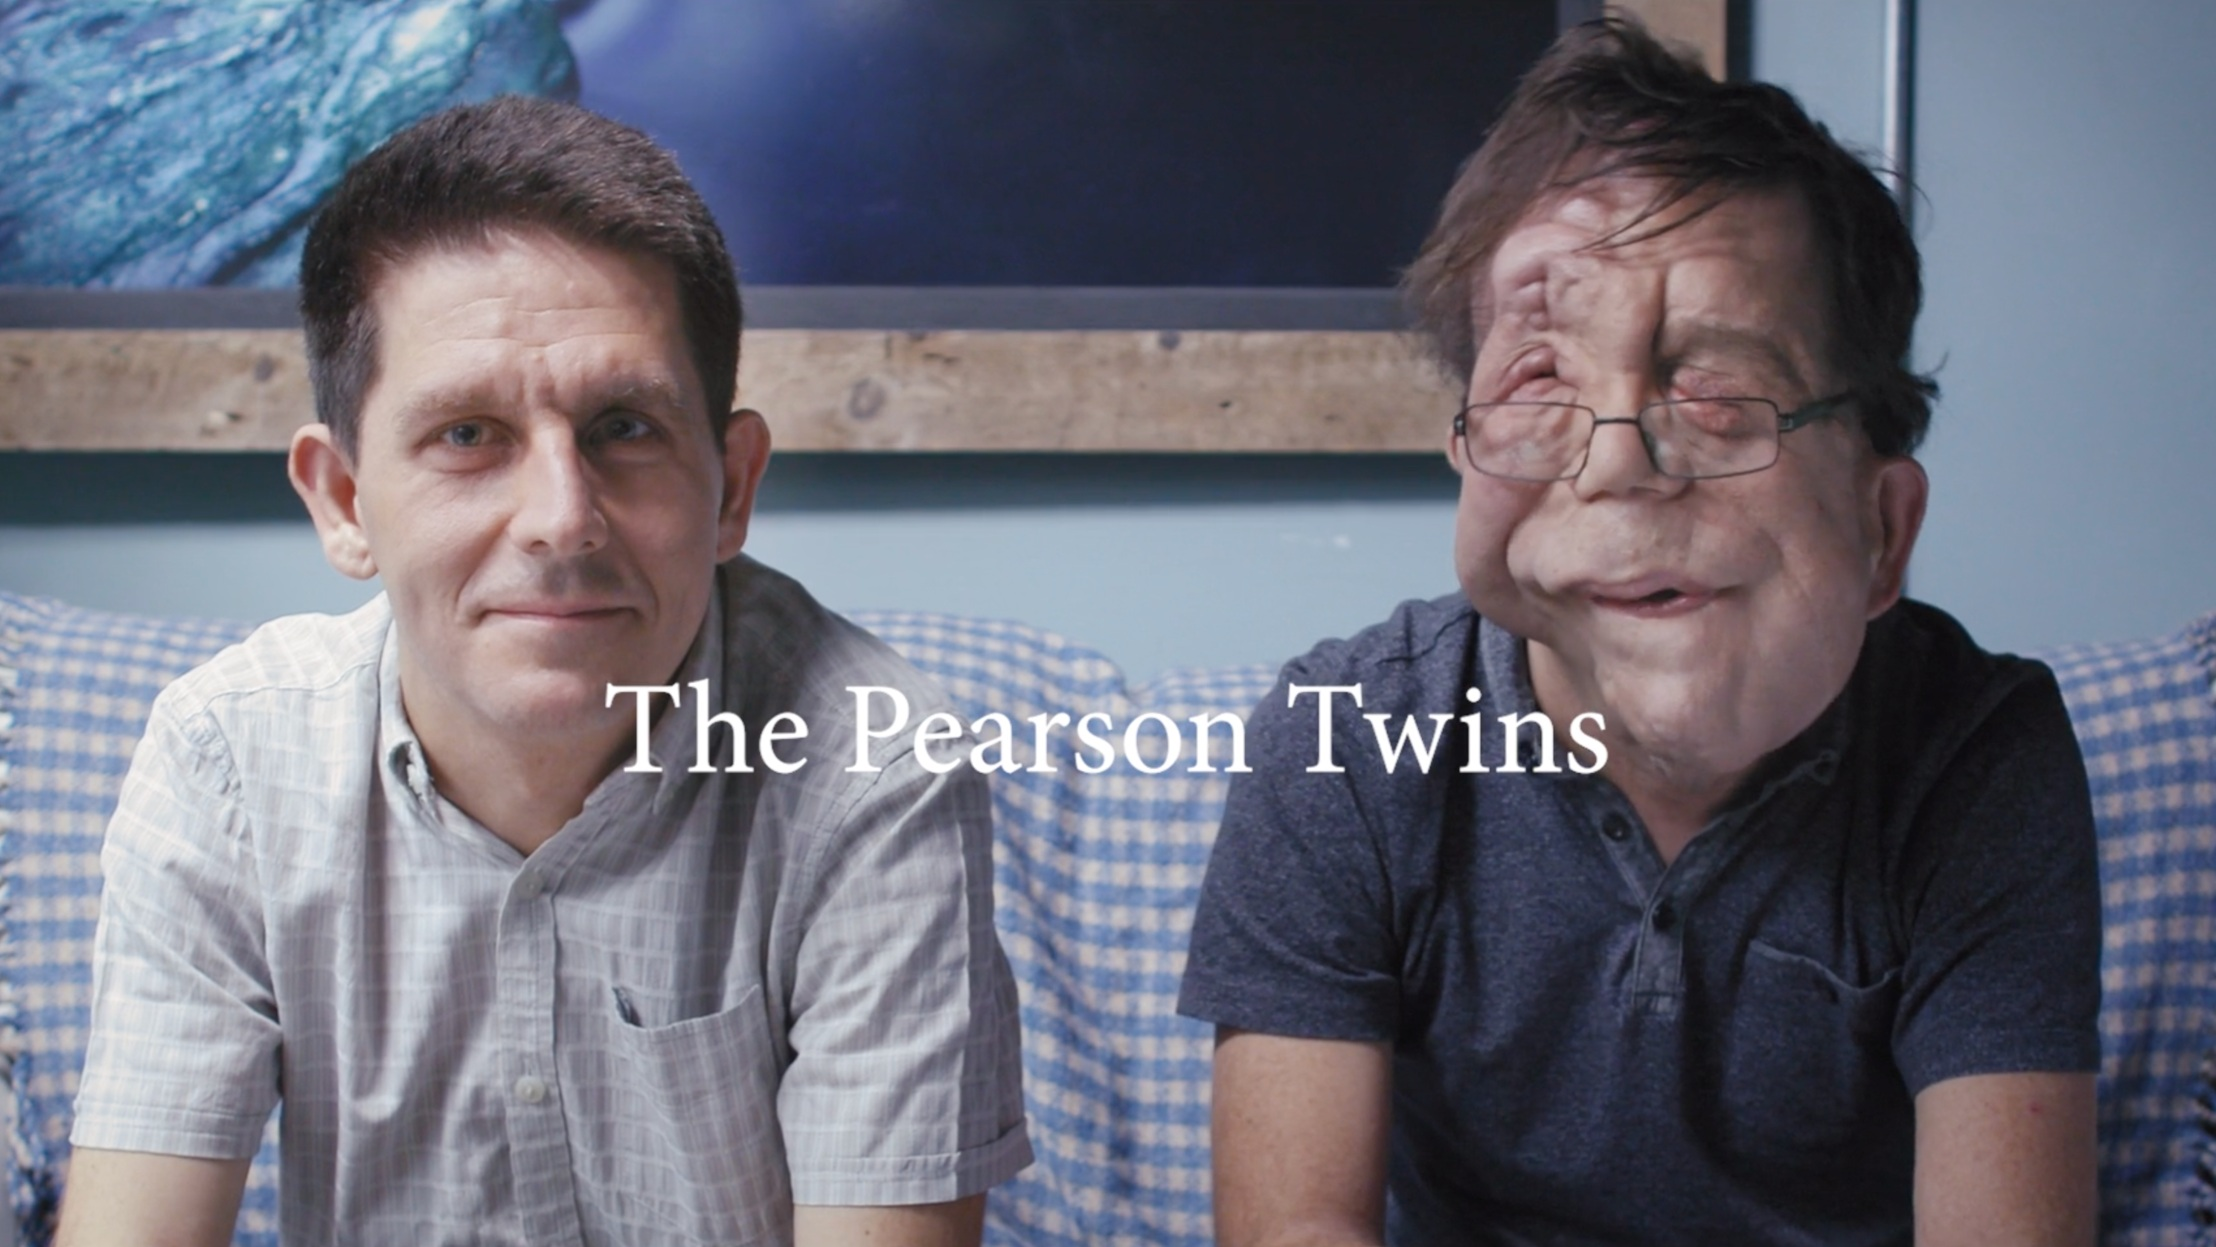 THE PEARSON TWINS